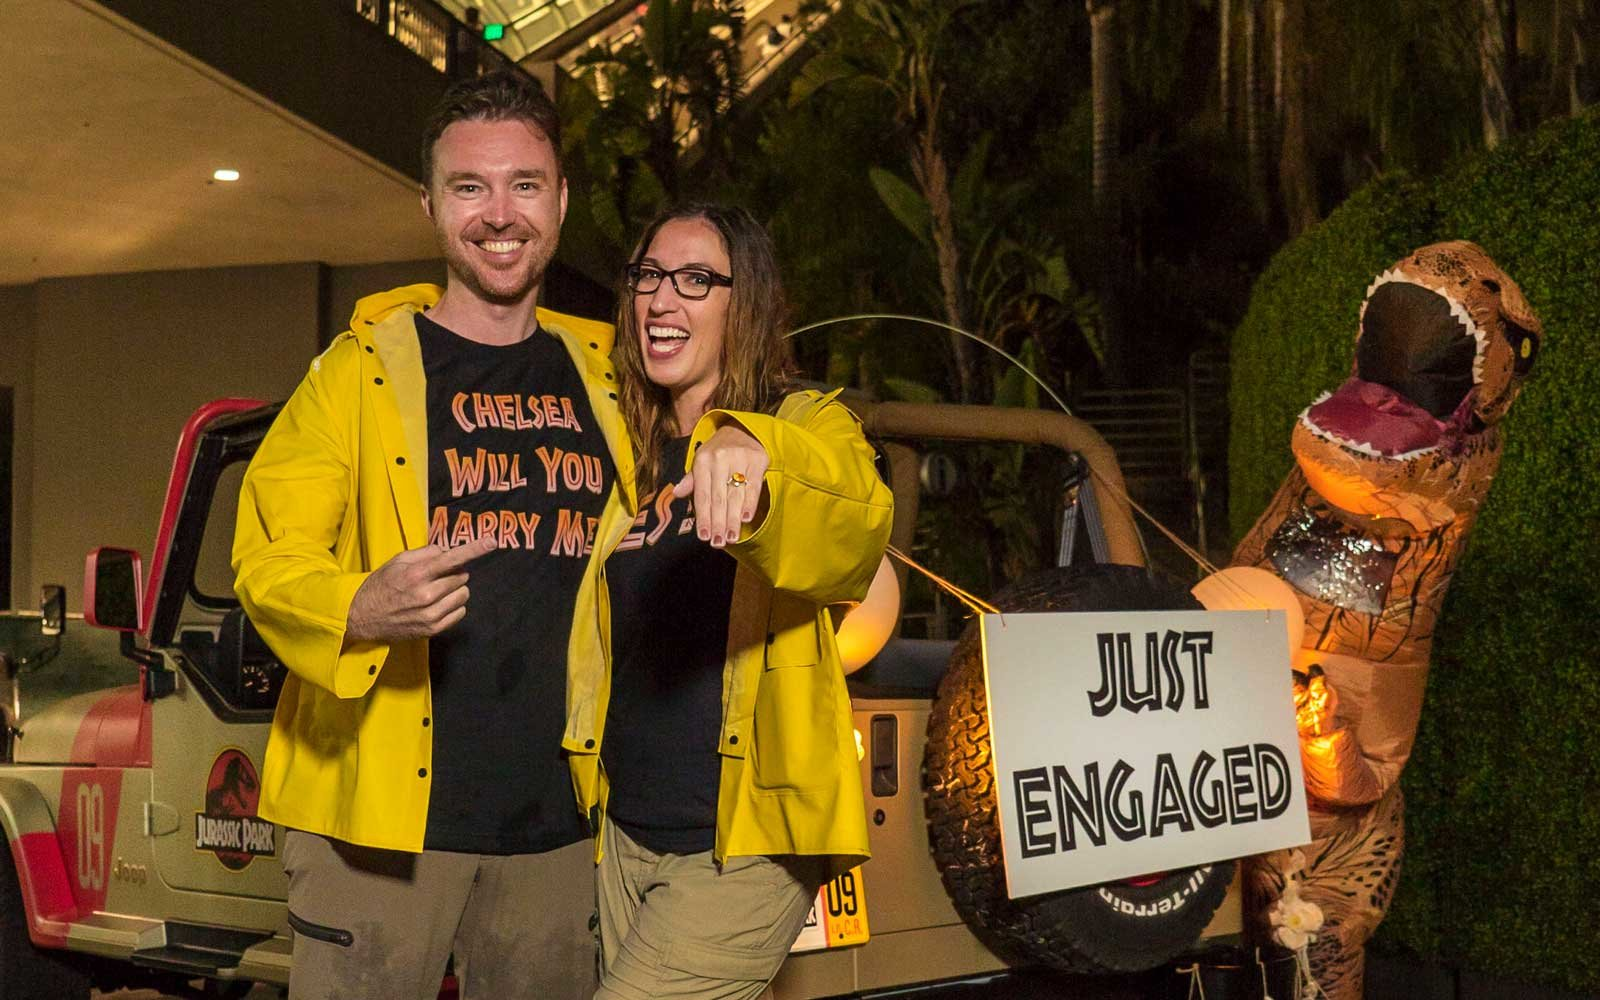 this couple spent 13 hours riding the jurassic park ride